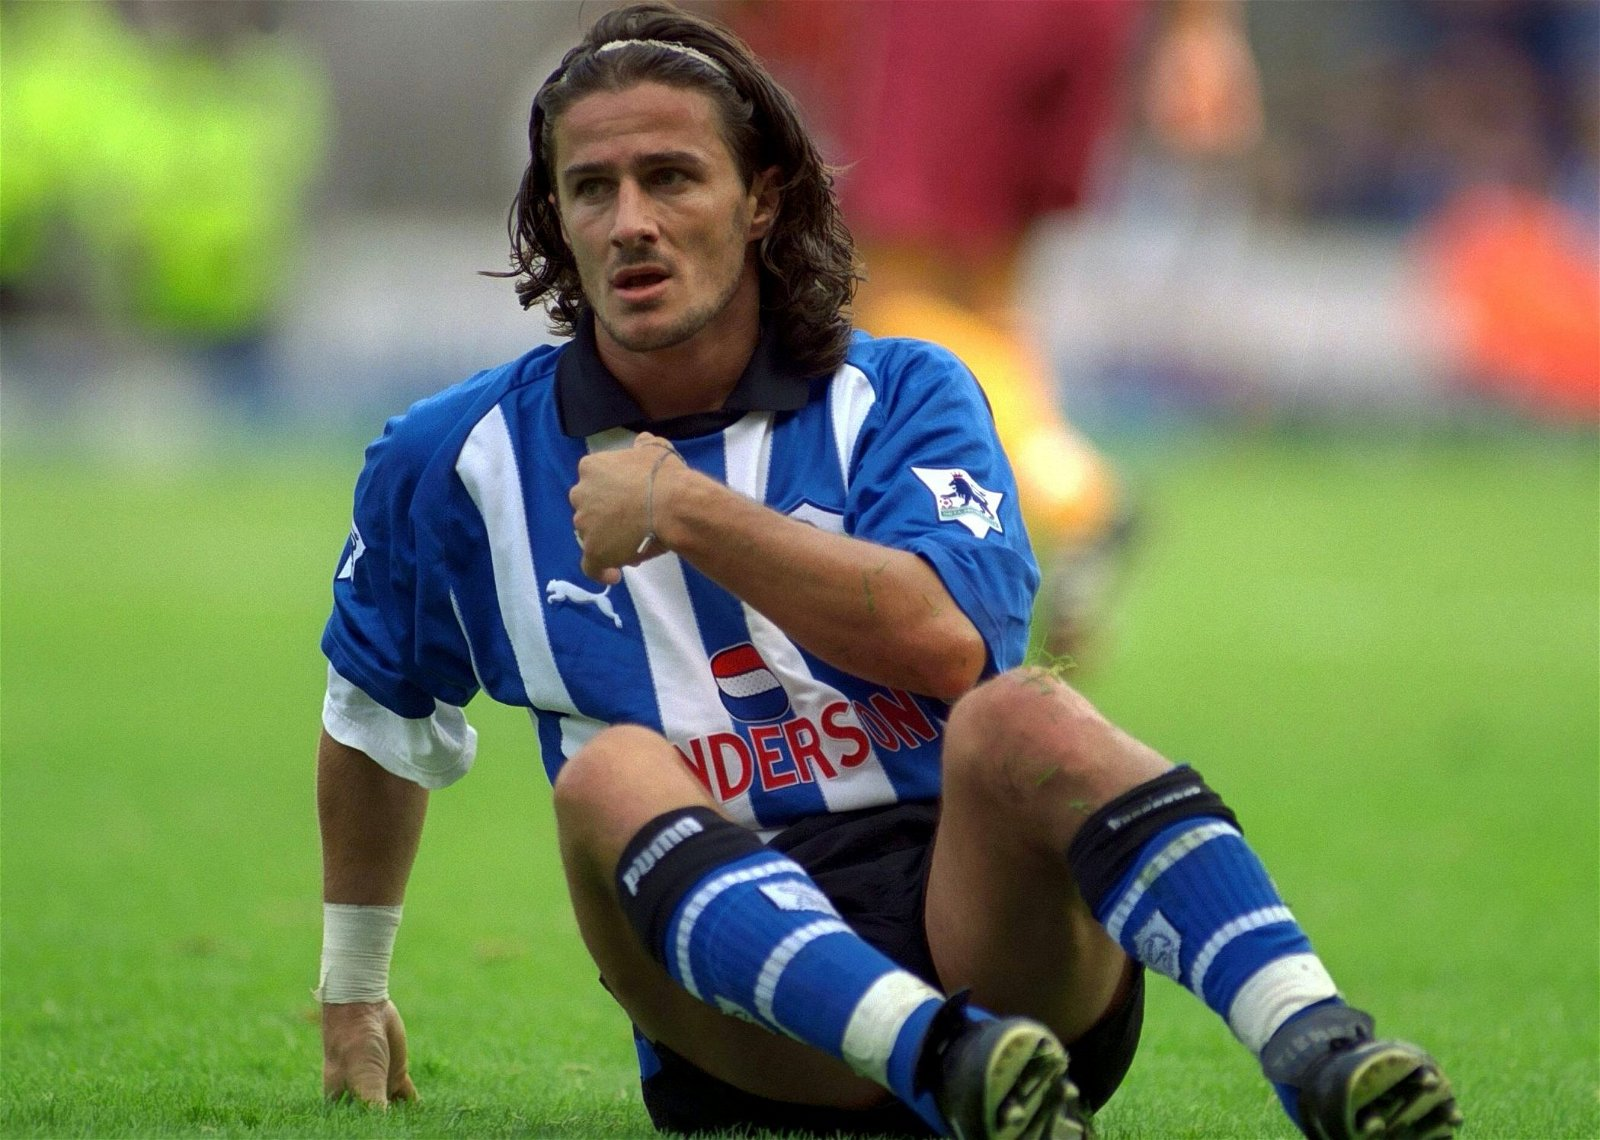 Benito Carbone playing for Sheffield Wednesday in the 1990s